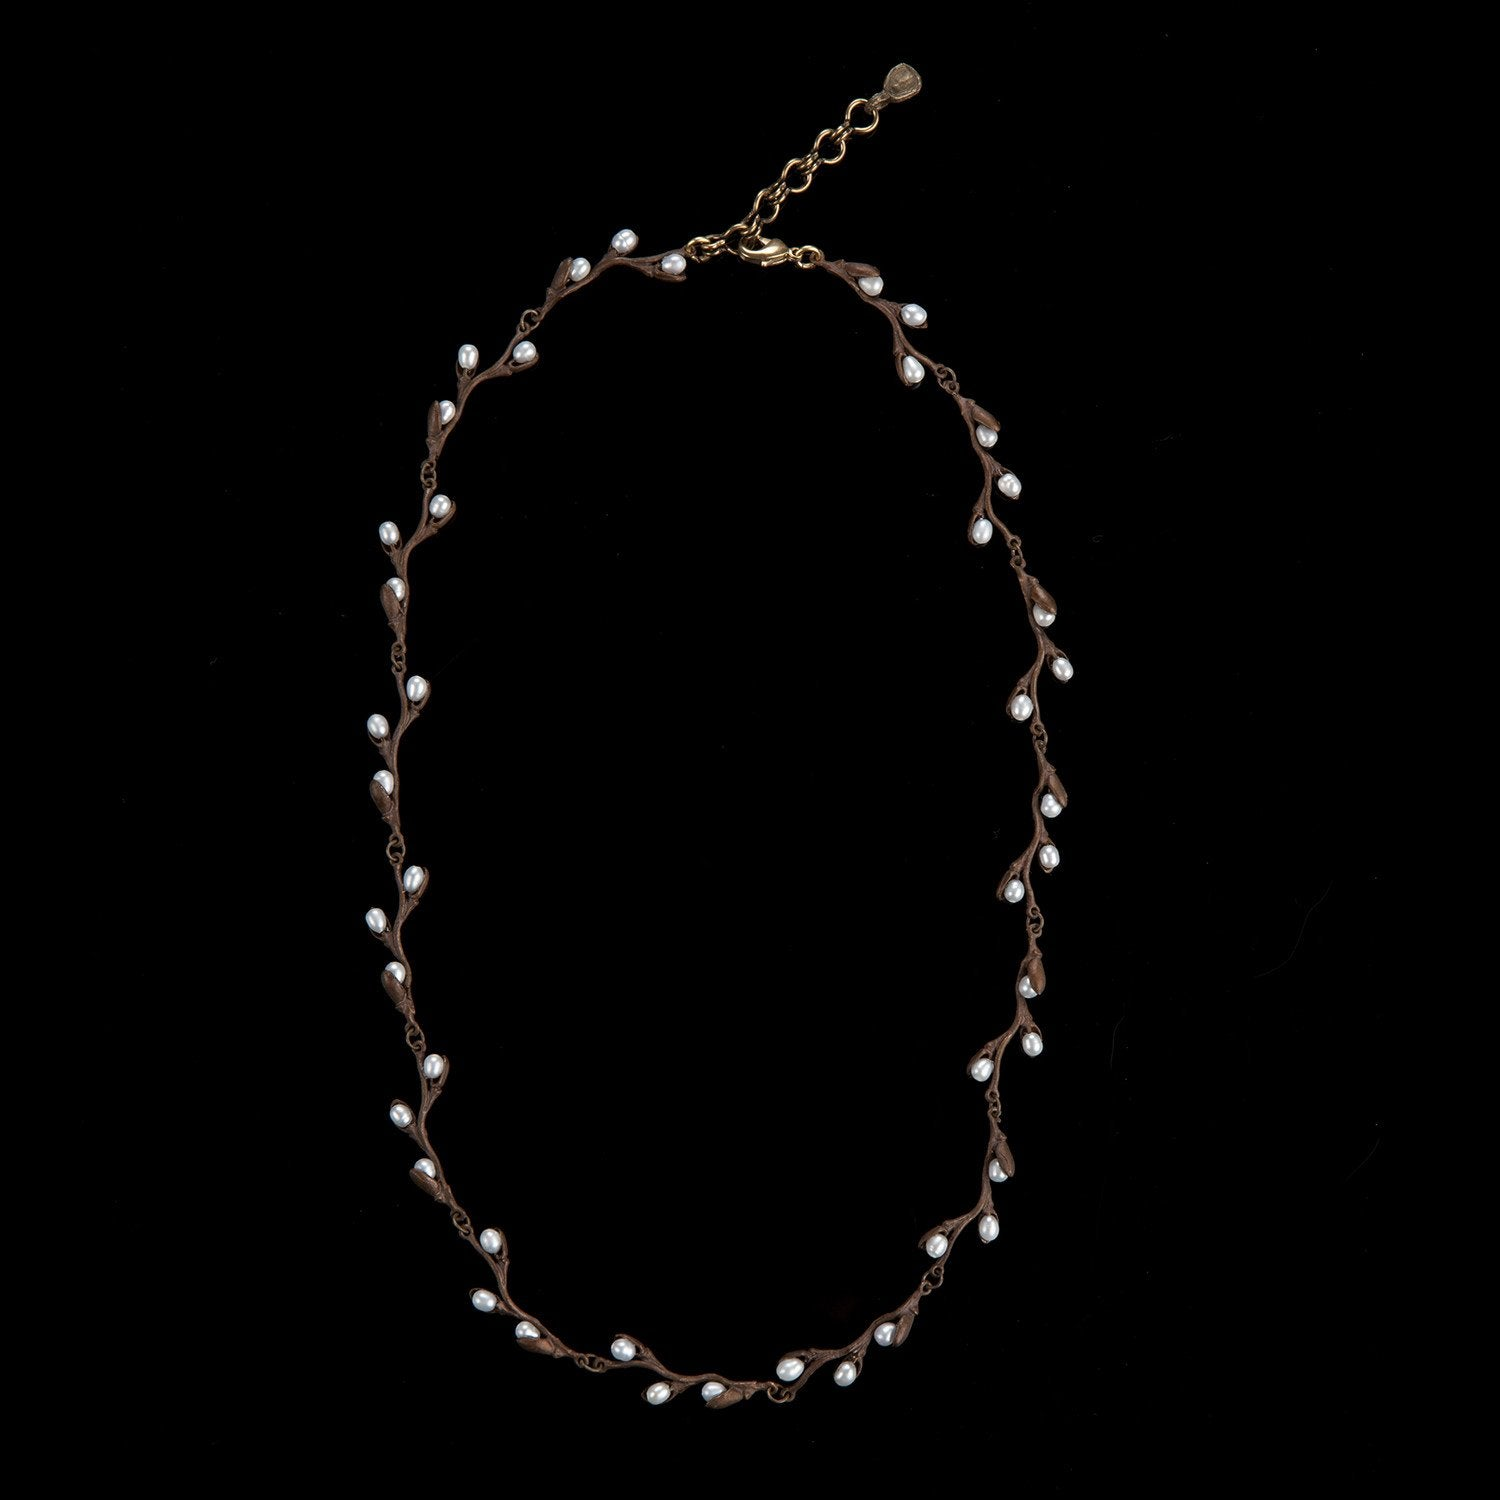 Pussy Willow Necklace - Delicate